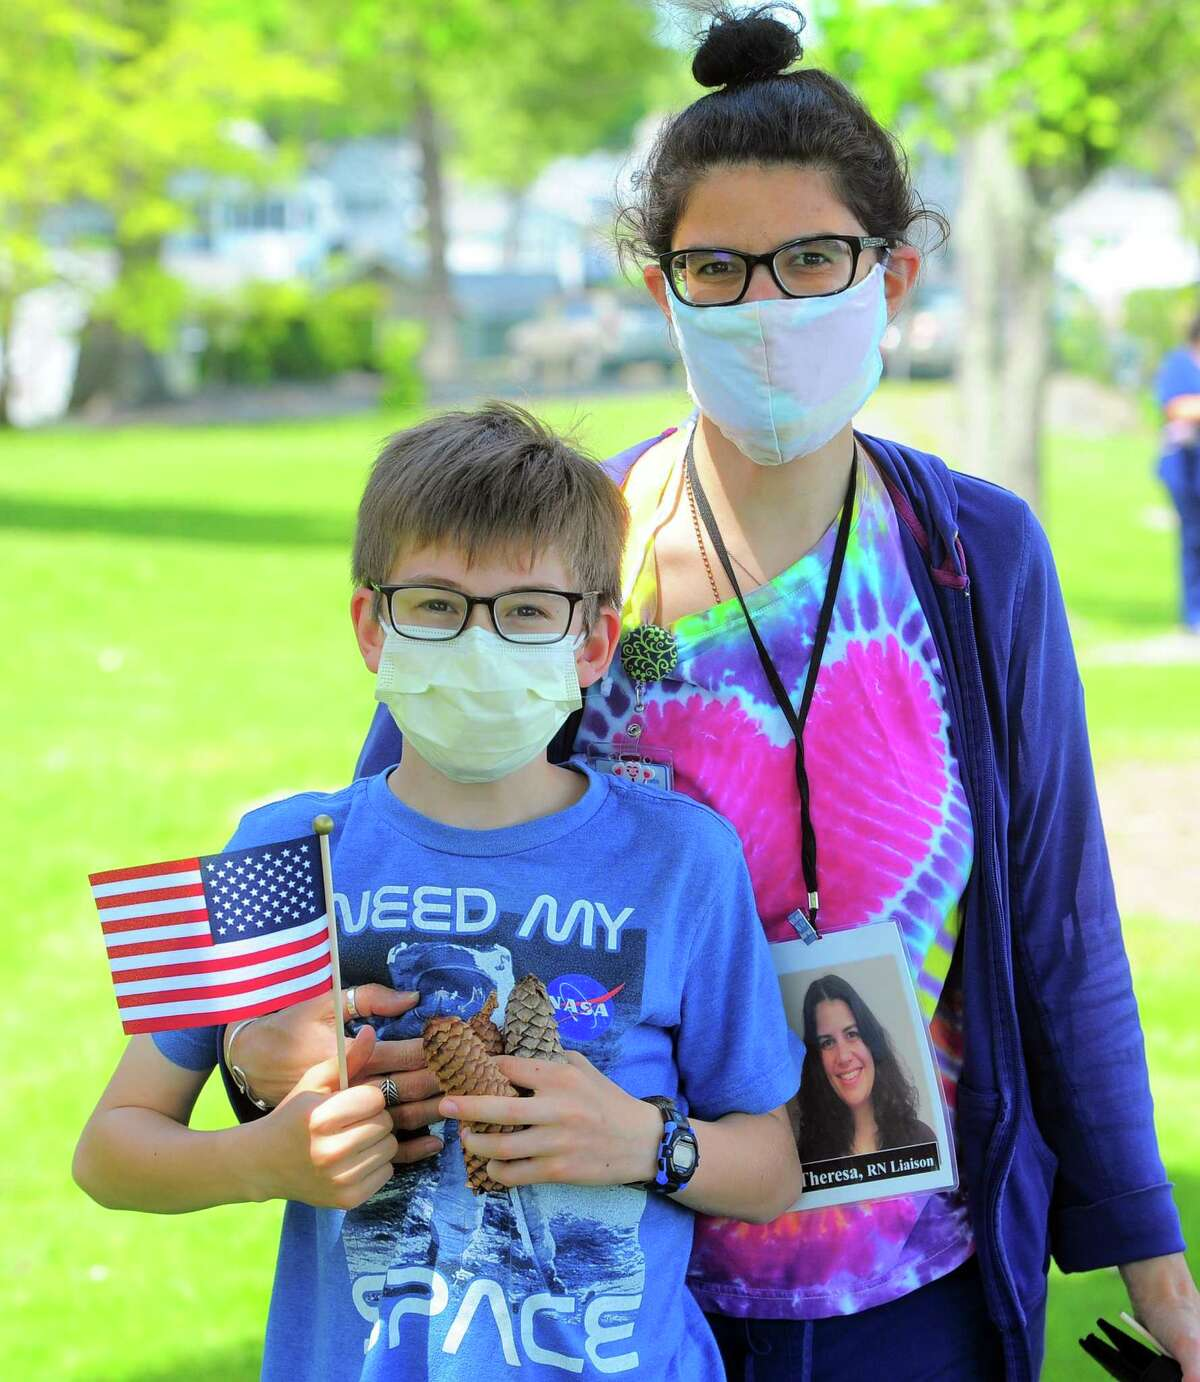 Theresa Razmakhnin and her son Dmitri, 12, attend the Thank You Tour which made a stop at Connecticut Hospice in Branford, Conn., on Wednesday May 27, 2020. The tour was held as a way to come together to enjoy this very special respite from all we are enduring as individuals, as families, as an organization, as a community, and as a nation.